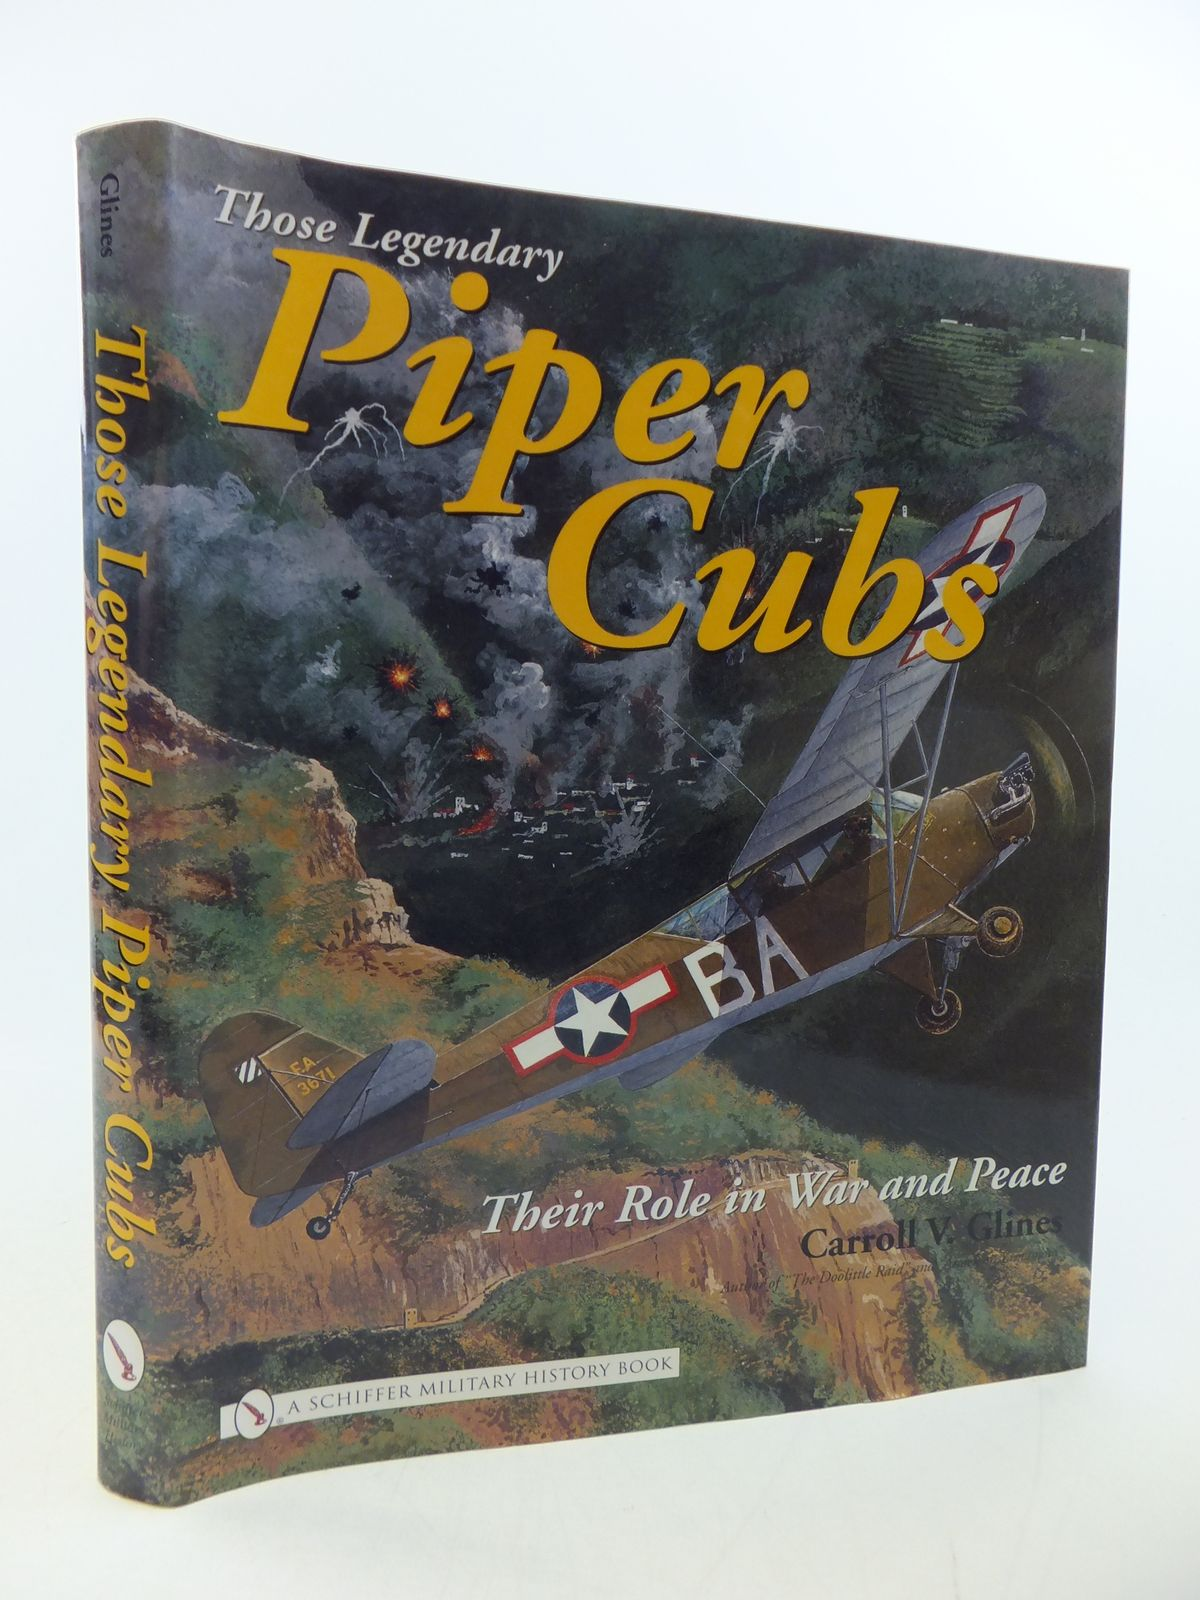 Photo of THOSE LEGENDARY PIPER CUBS THEIR ROLE IN WAR AND PEACE written by Glines, Carroll V. published by Schiffer Military History (STOCK CODE: 1808700)  for sale by Stella & Rose's Books